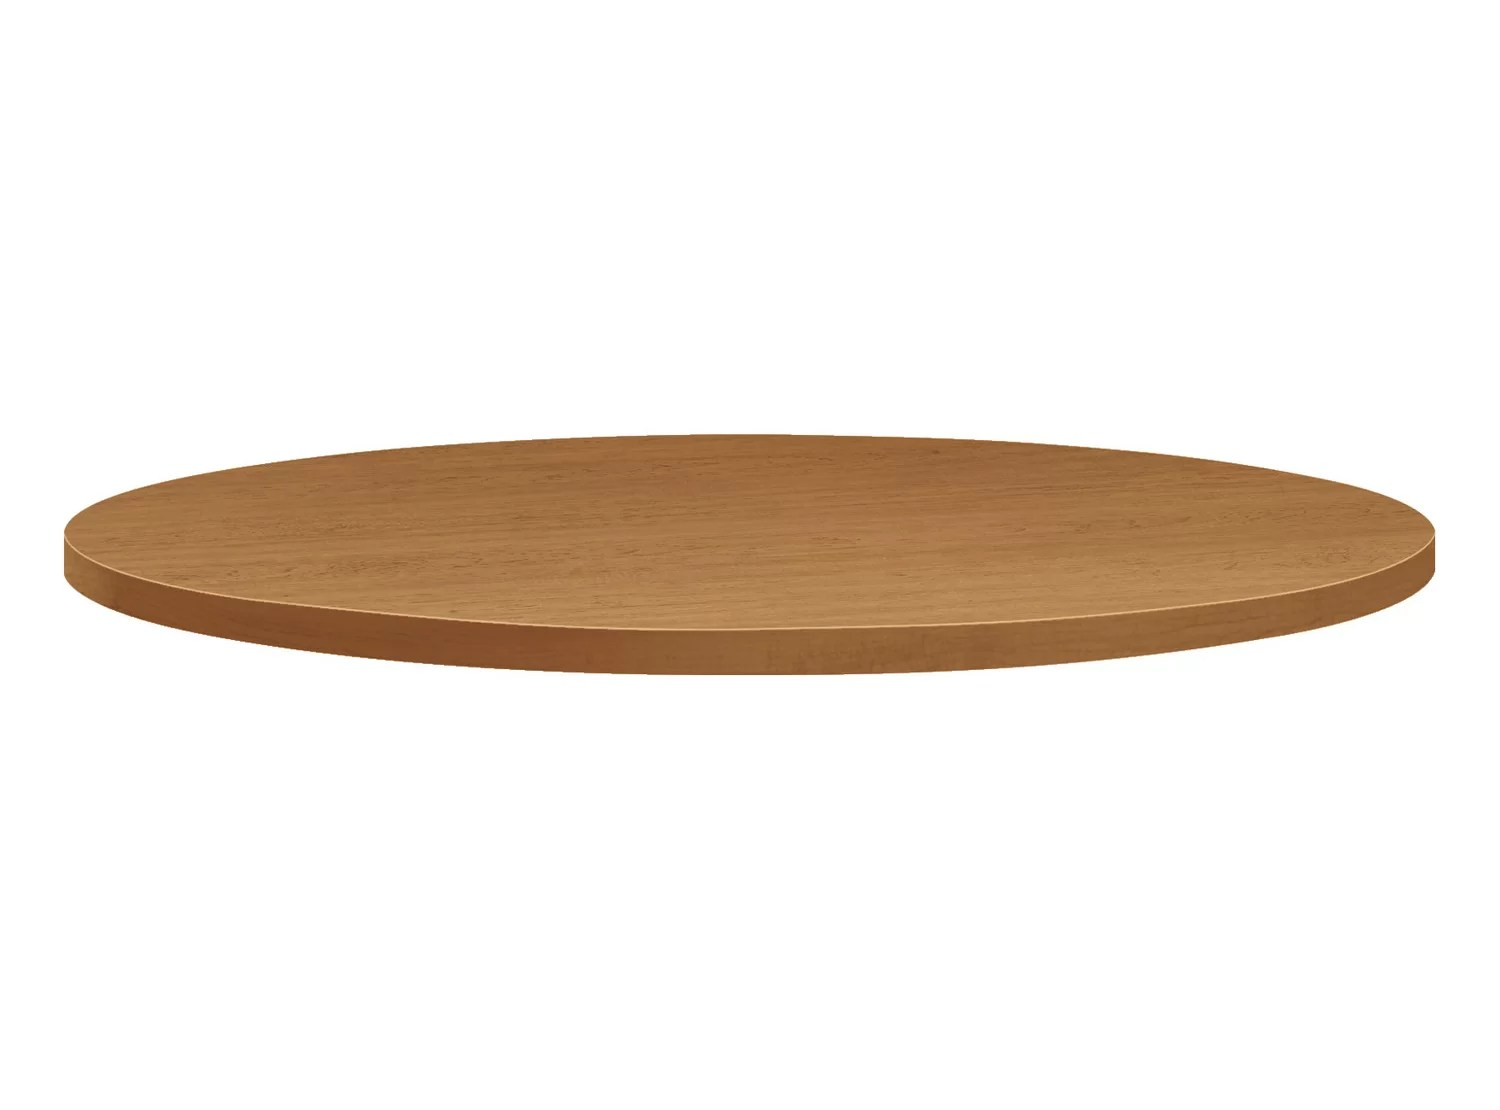 Round Table Tops Between Round Table Tops